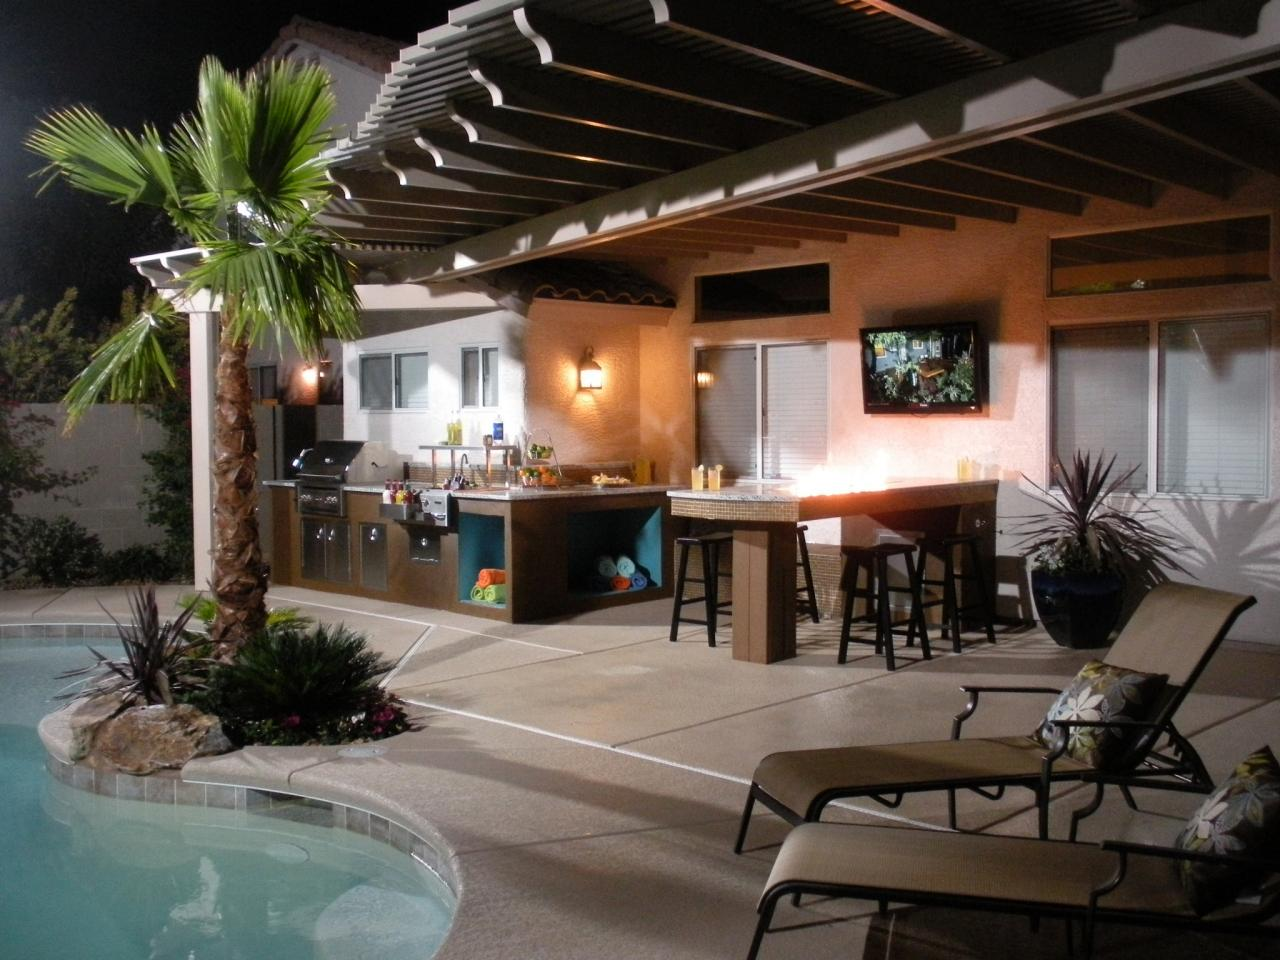 outdoor kitchen pictures photo - 8